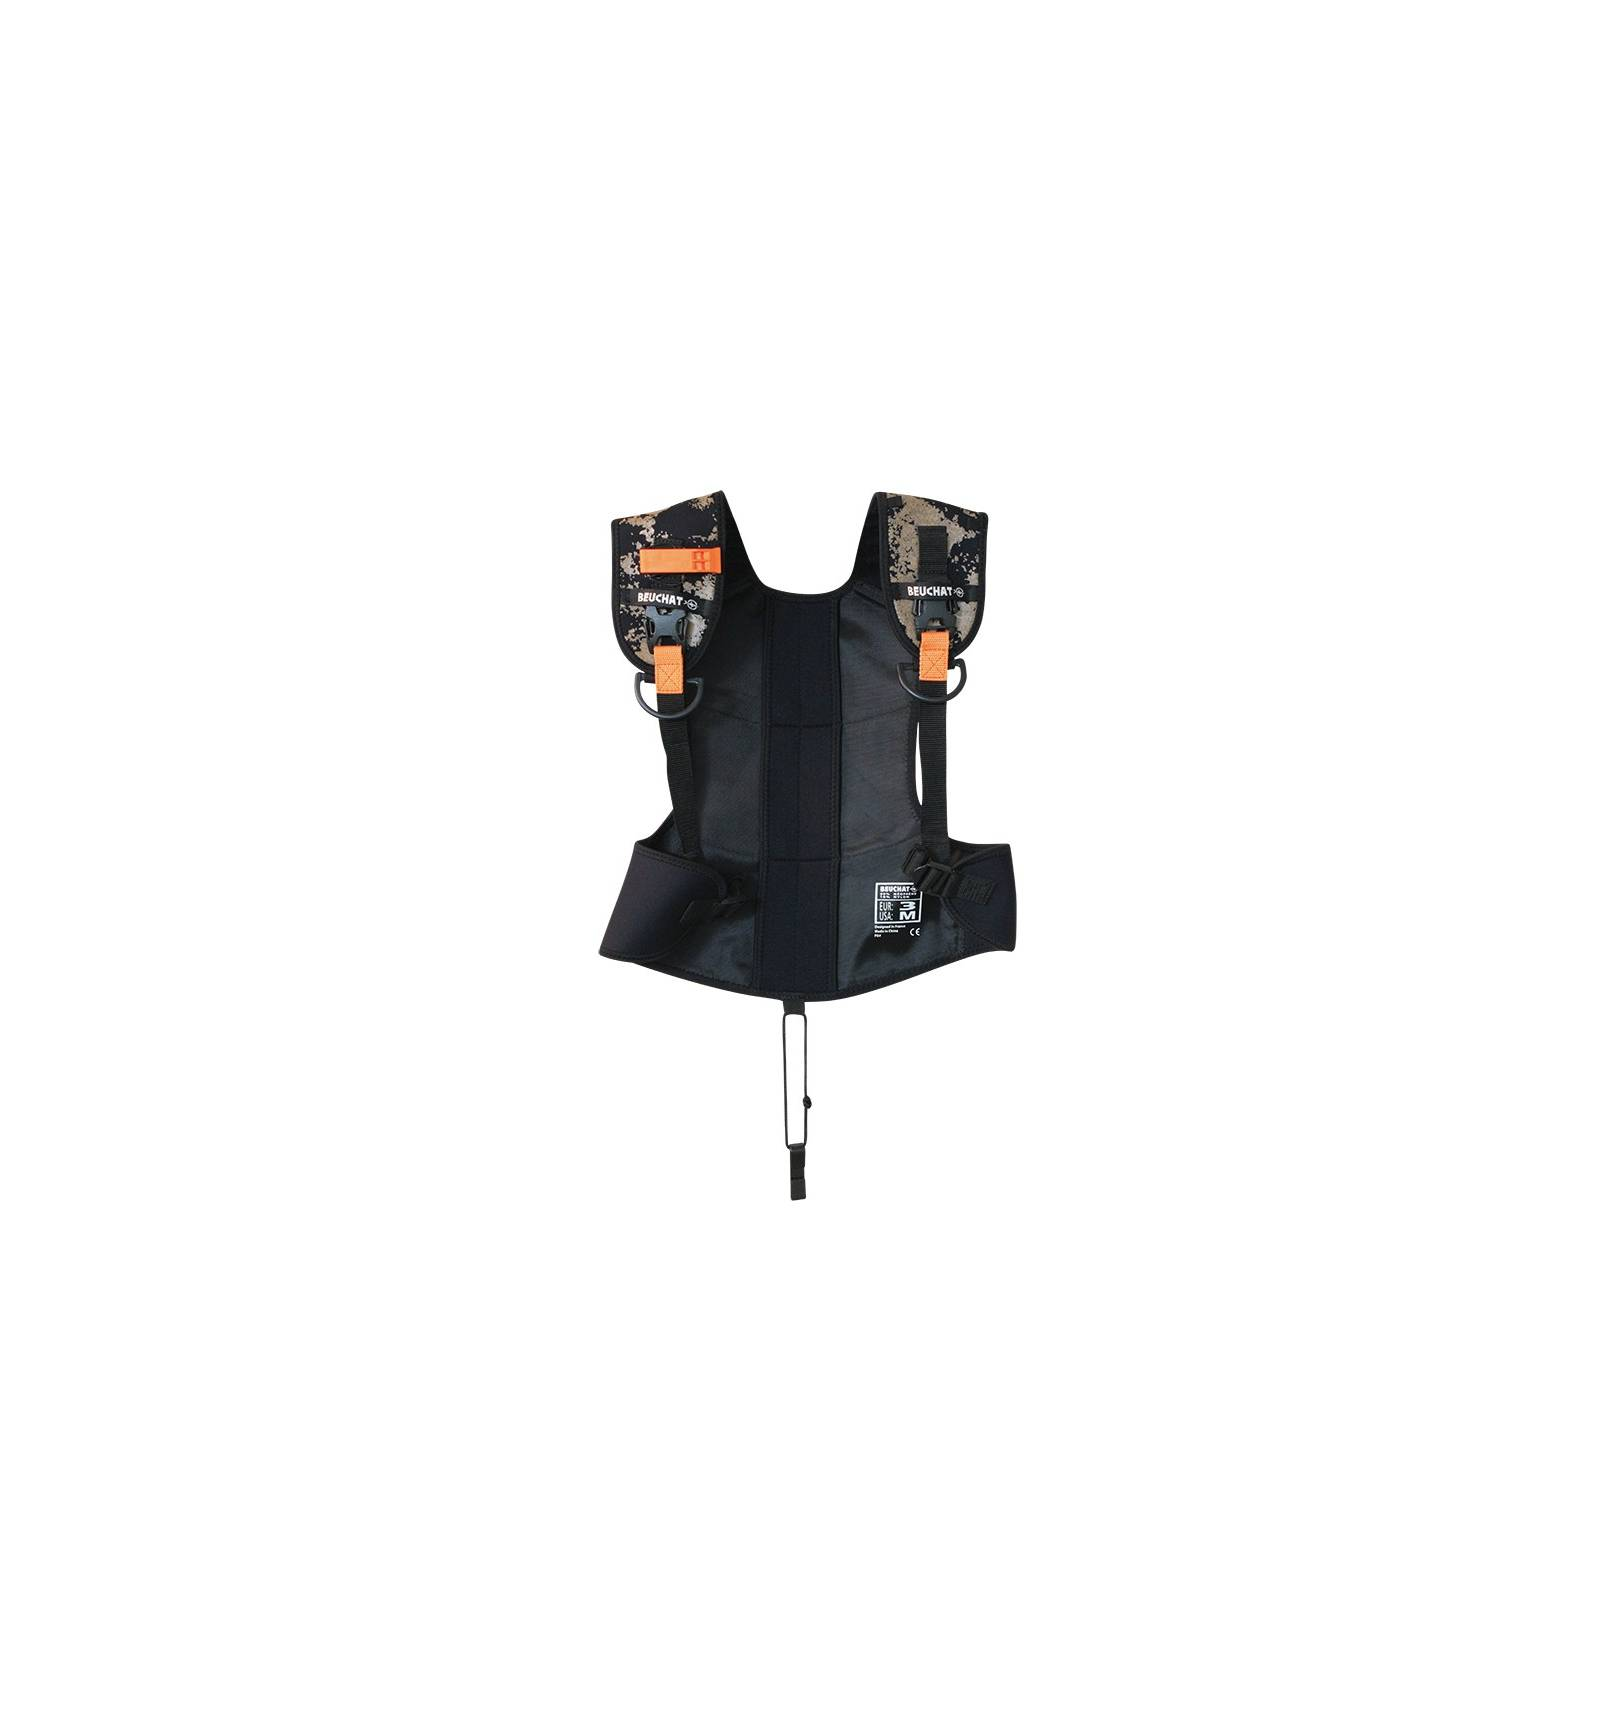 BEUCHAT Baudrier Chasse sous Marine 7kg